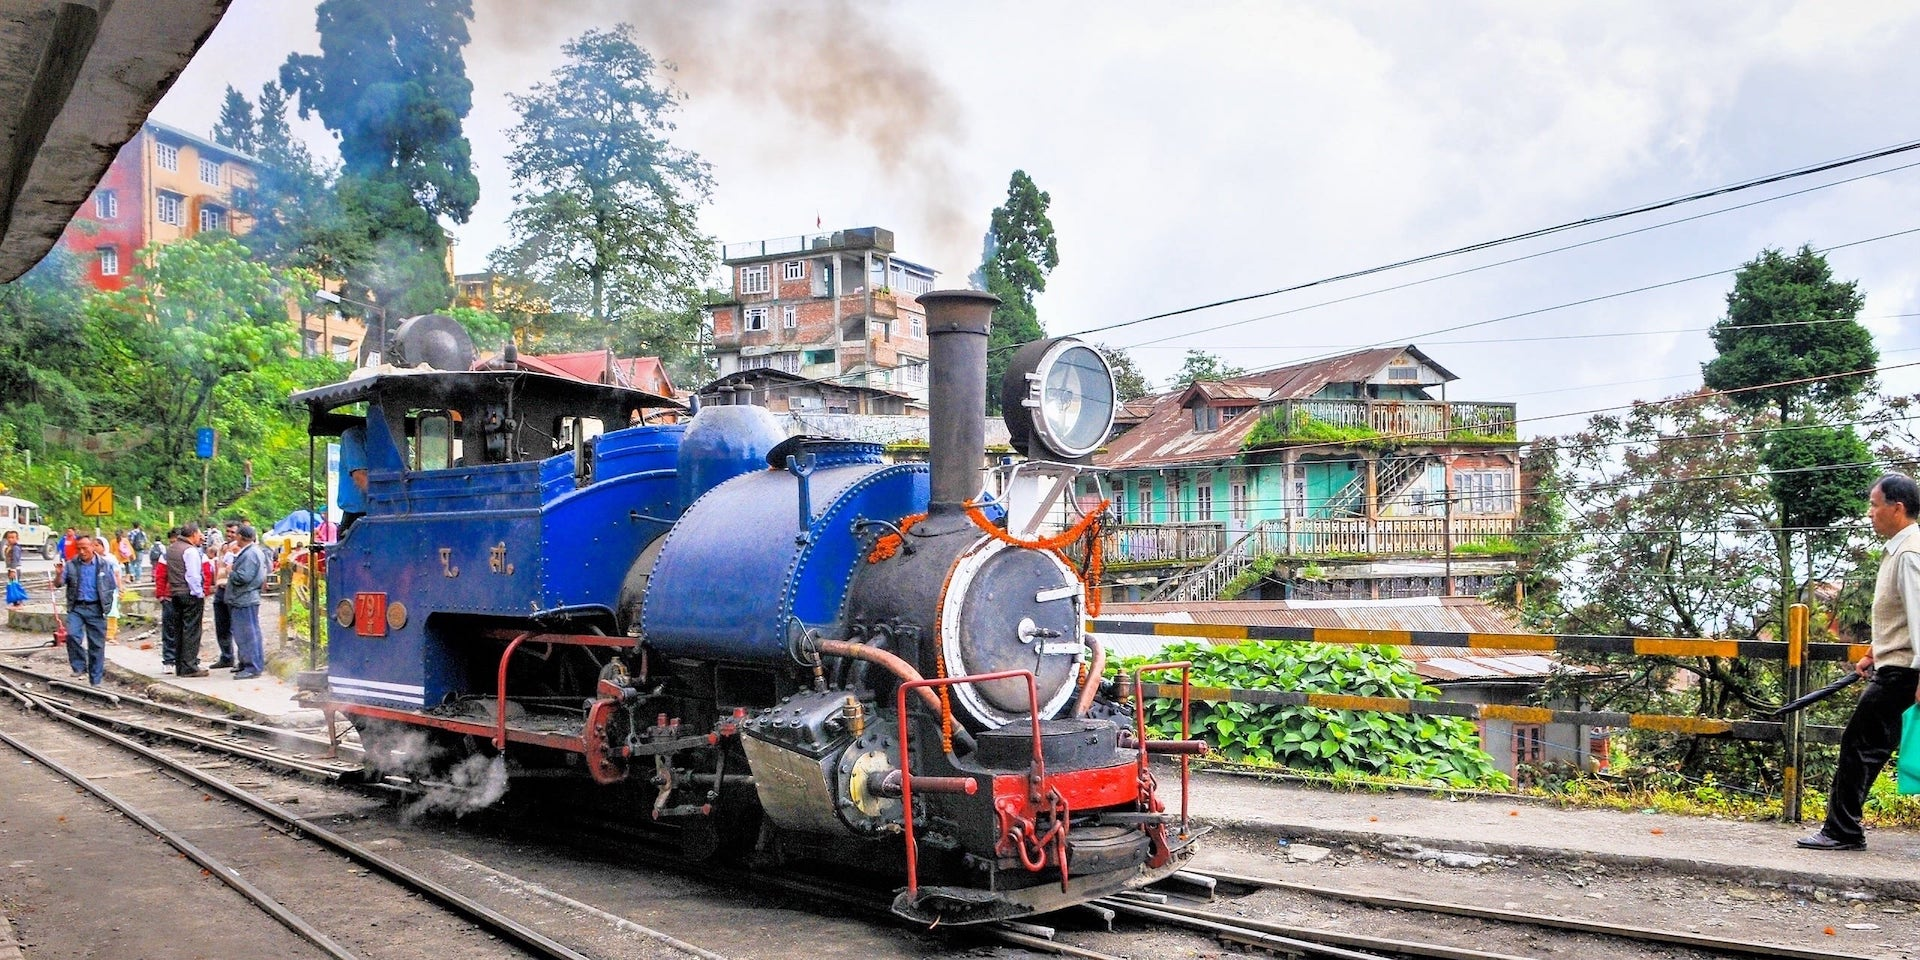 Darjeeling Toy Train Himalayan Railway leaves station